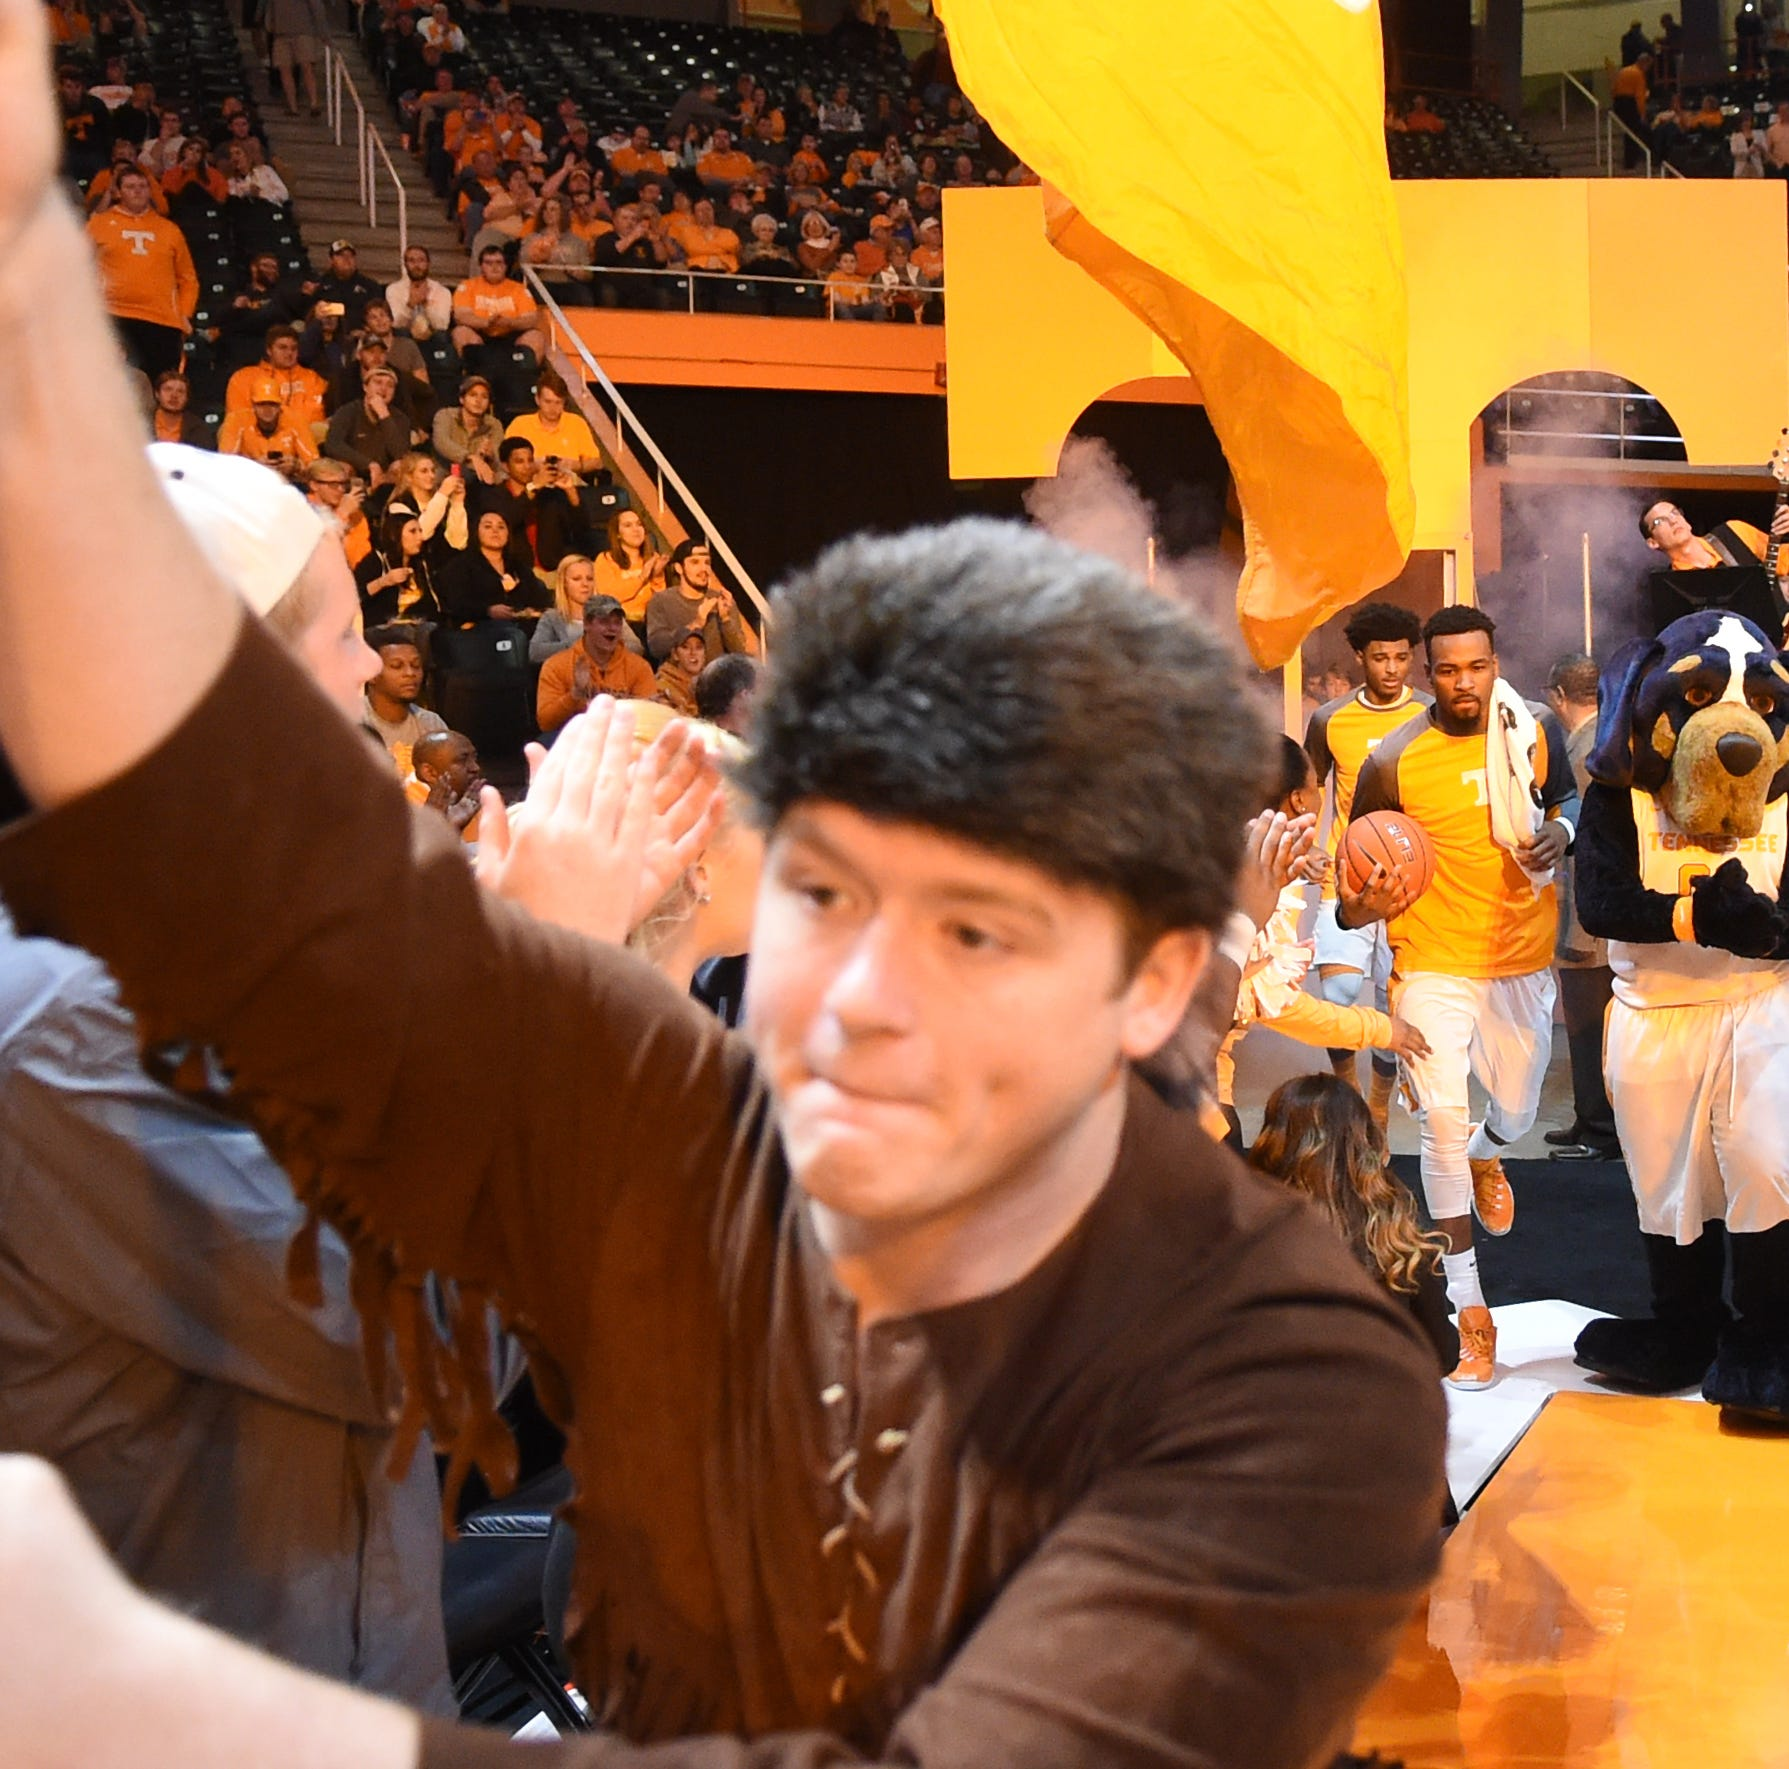 Mike Strange: Vols-Mountaineers matchup will end one 127-year streak